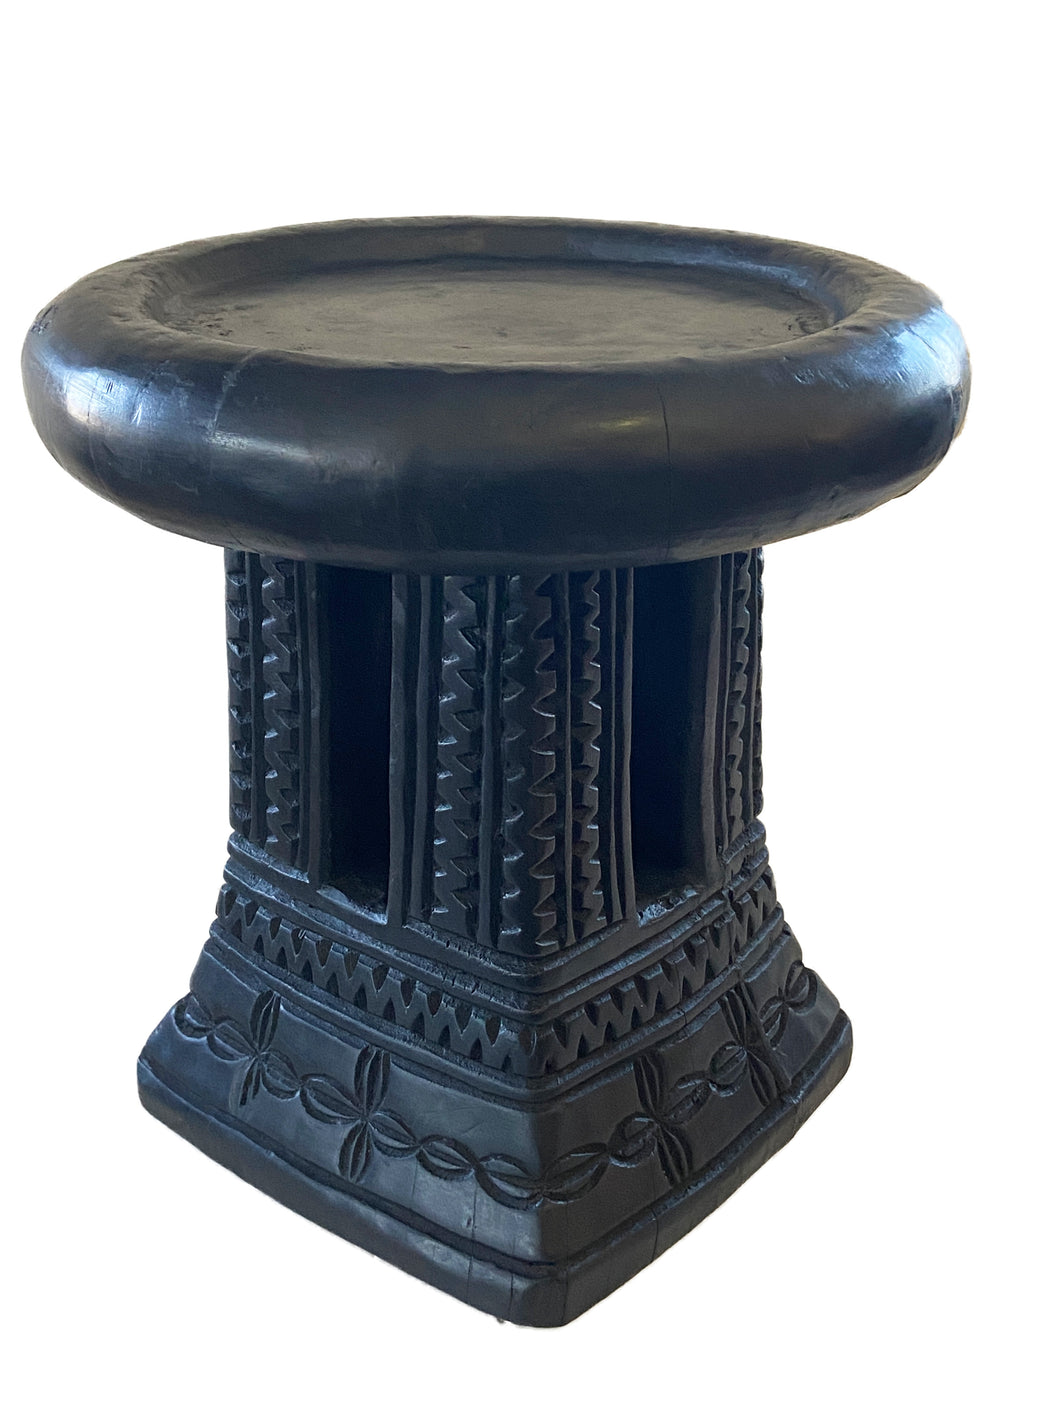 Old Bamileke Stool/Table Cameroon 14.25